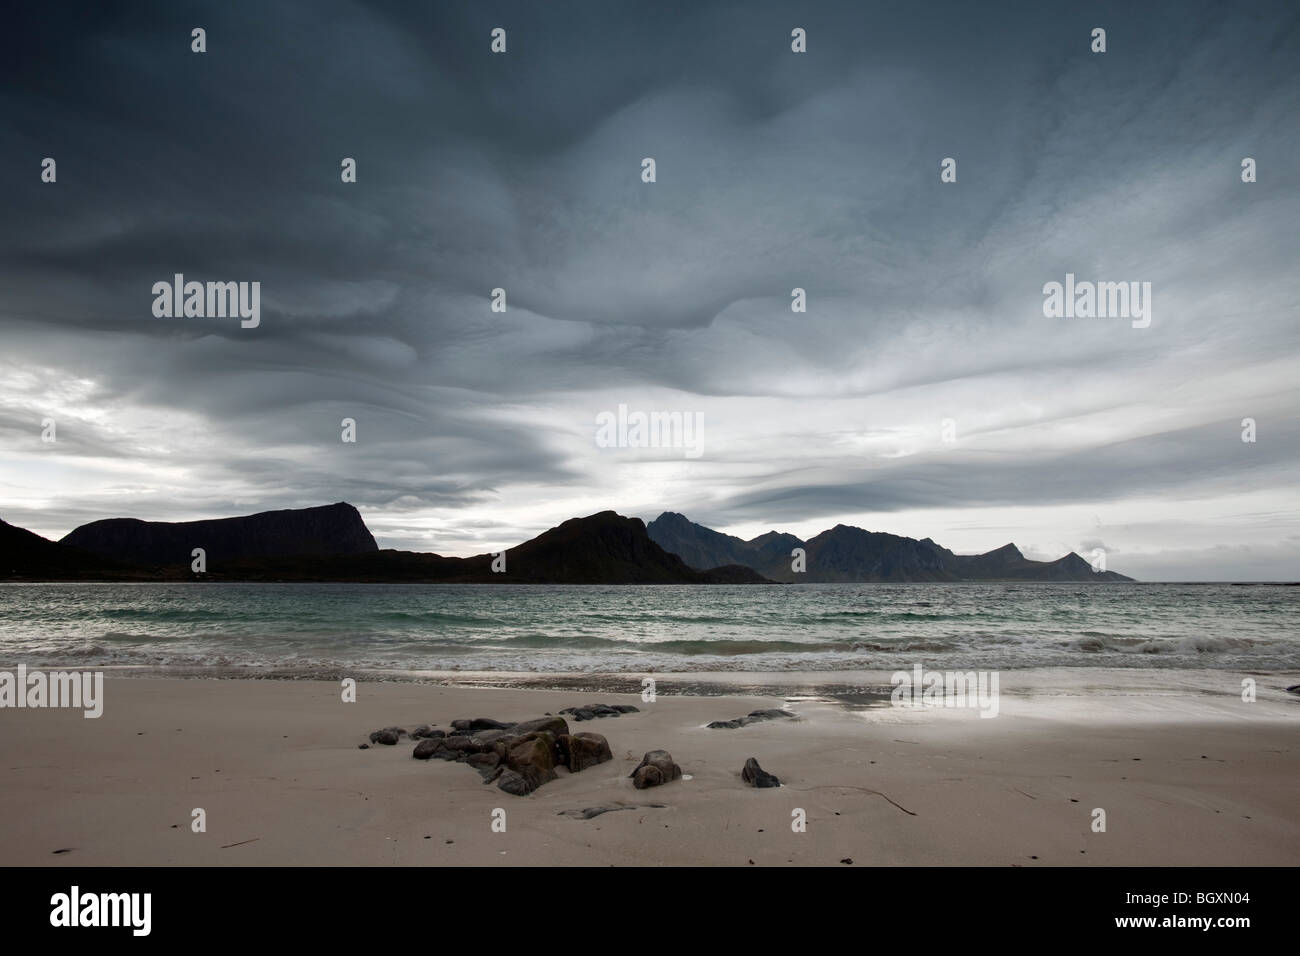 Dark clouds over a beach in Lofoten islands, North Norway - Stock Image